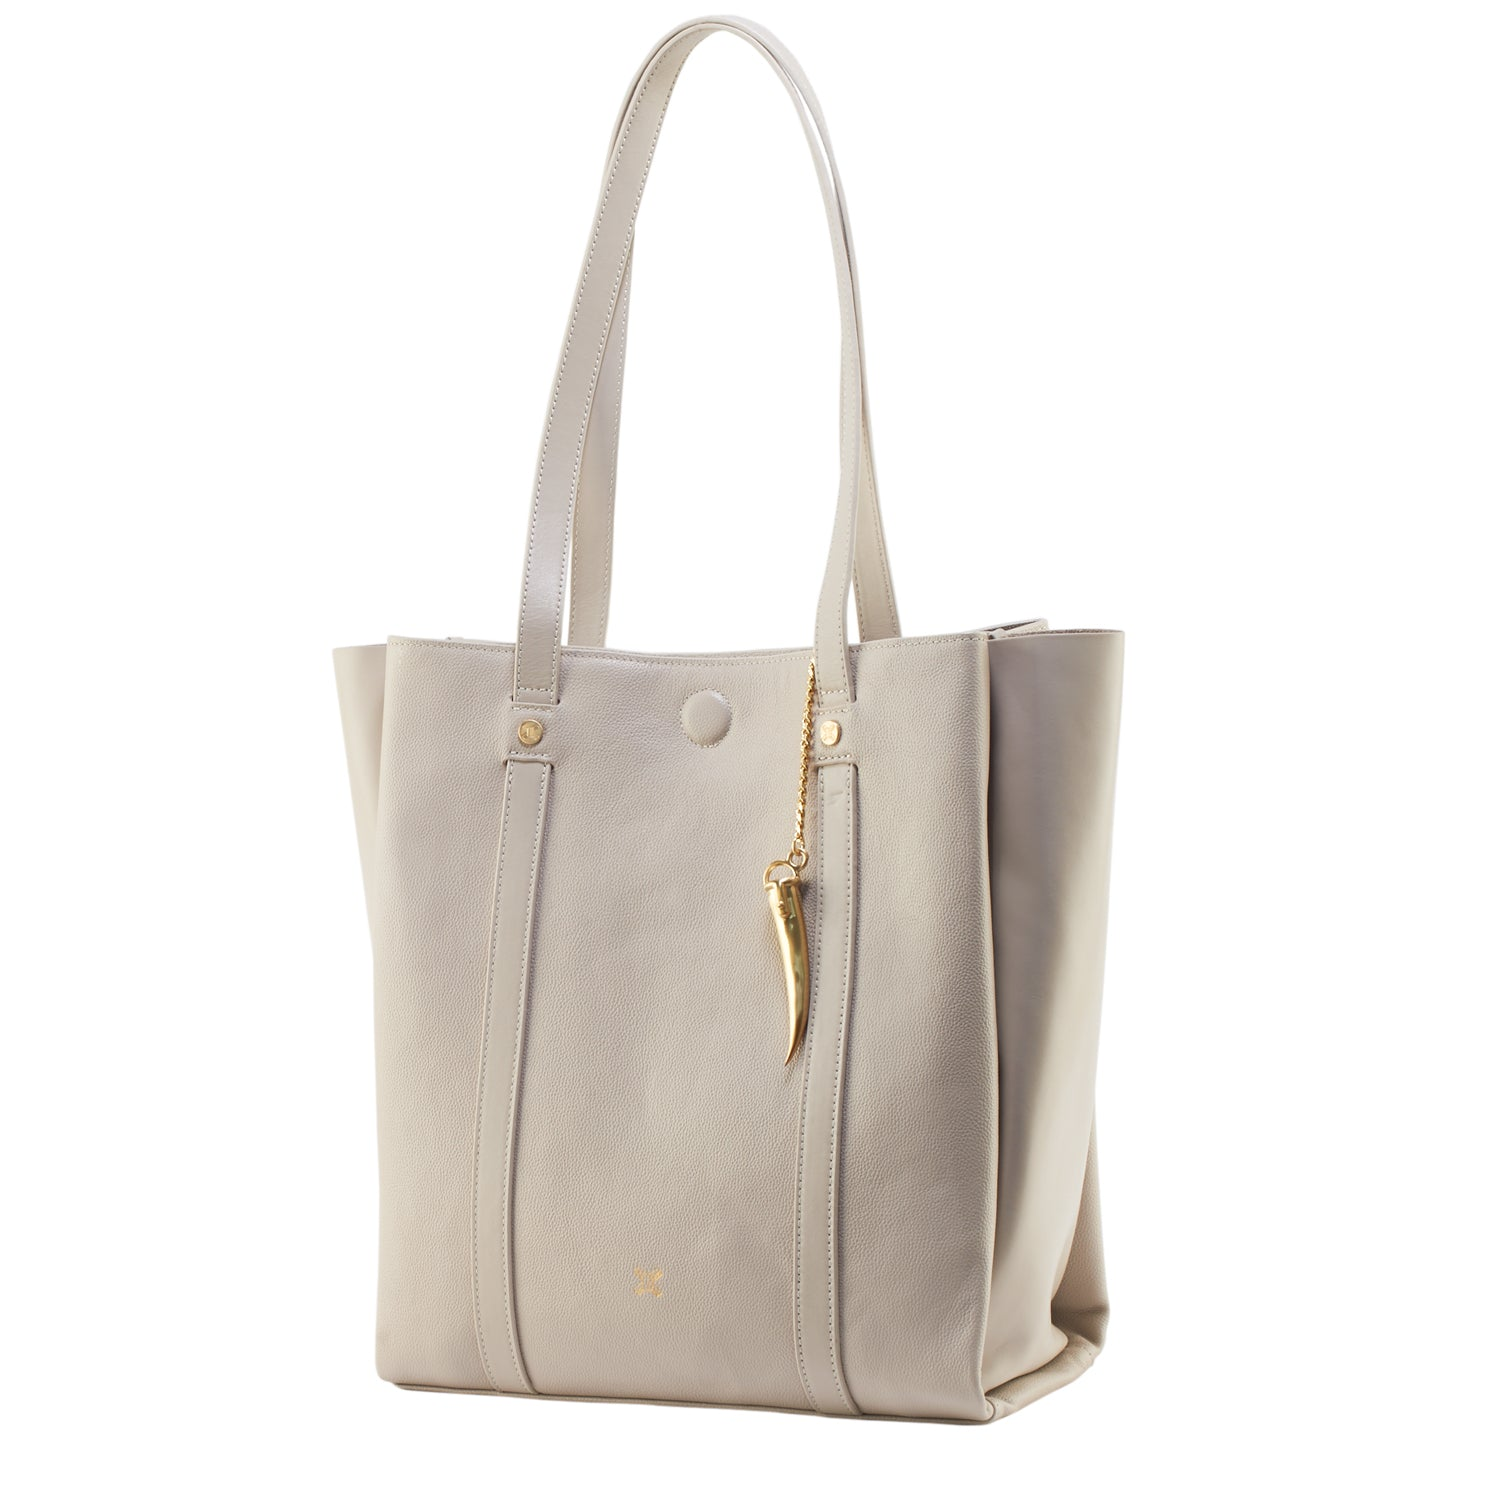 THE MARISA TOTE